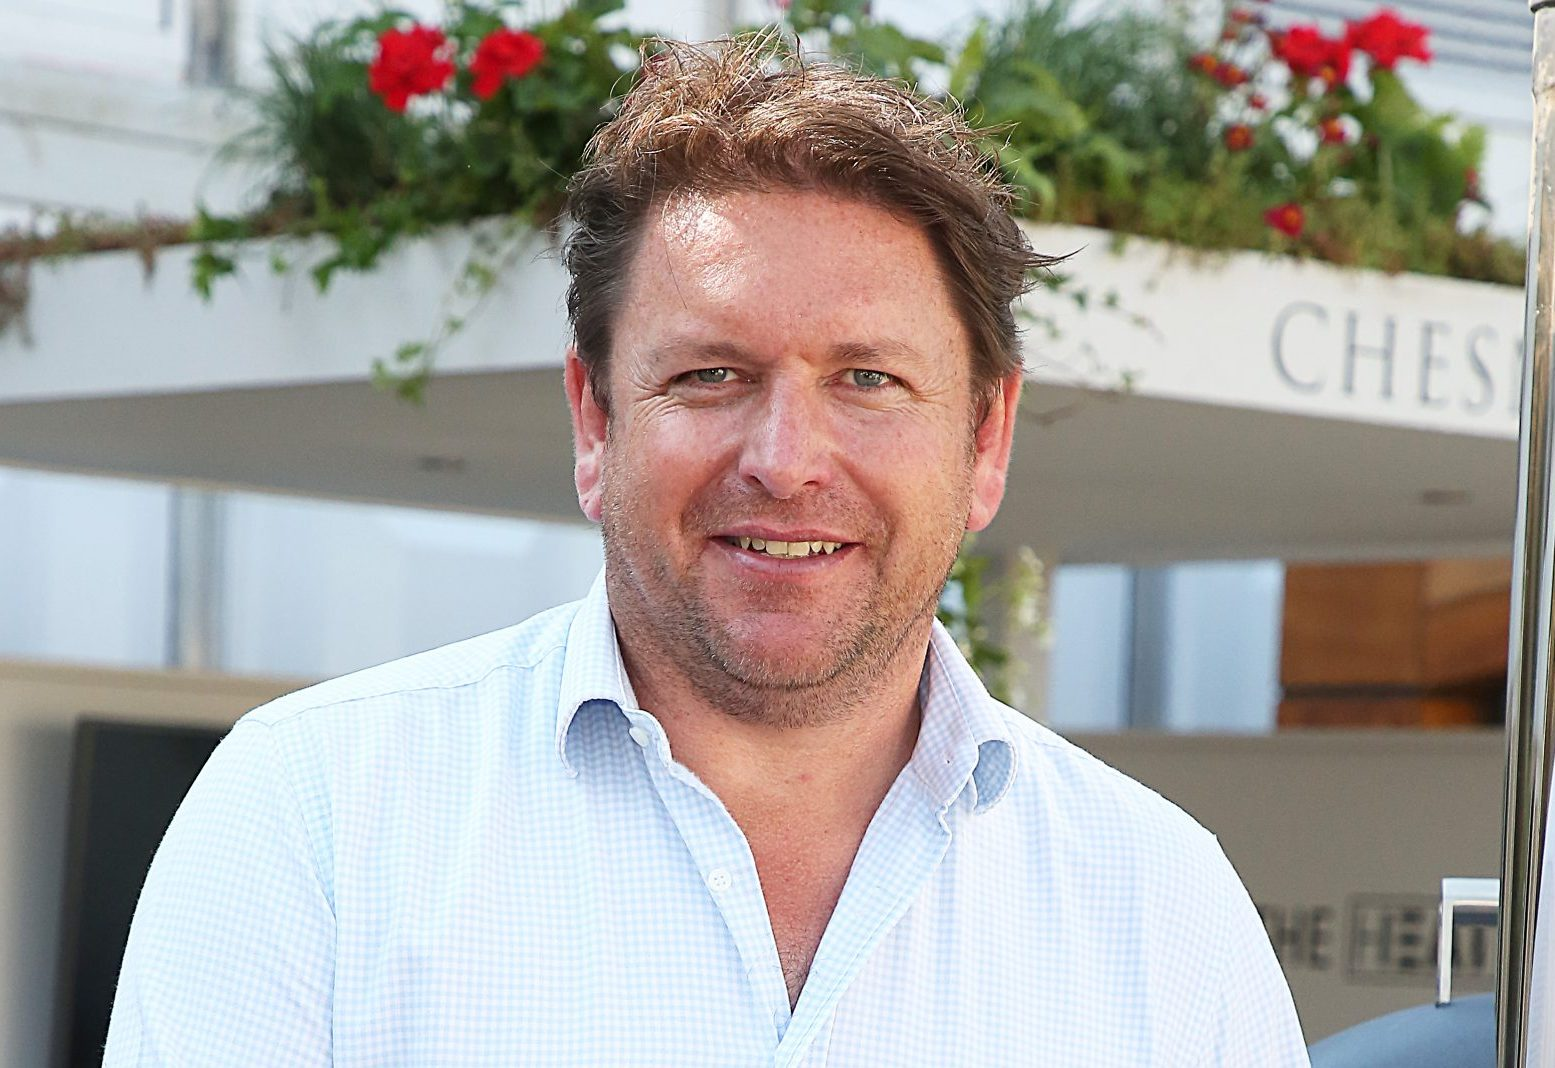 Saturday Morning host James Martin steps in to help care home after elderly woman's emotional coronavirus plea